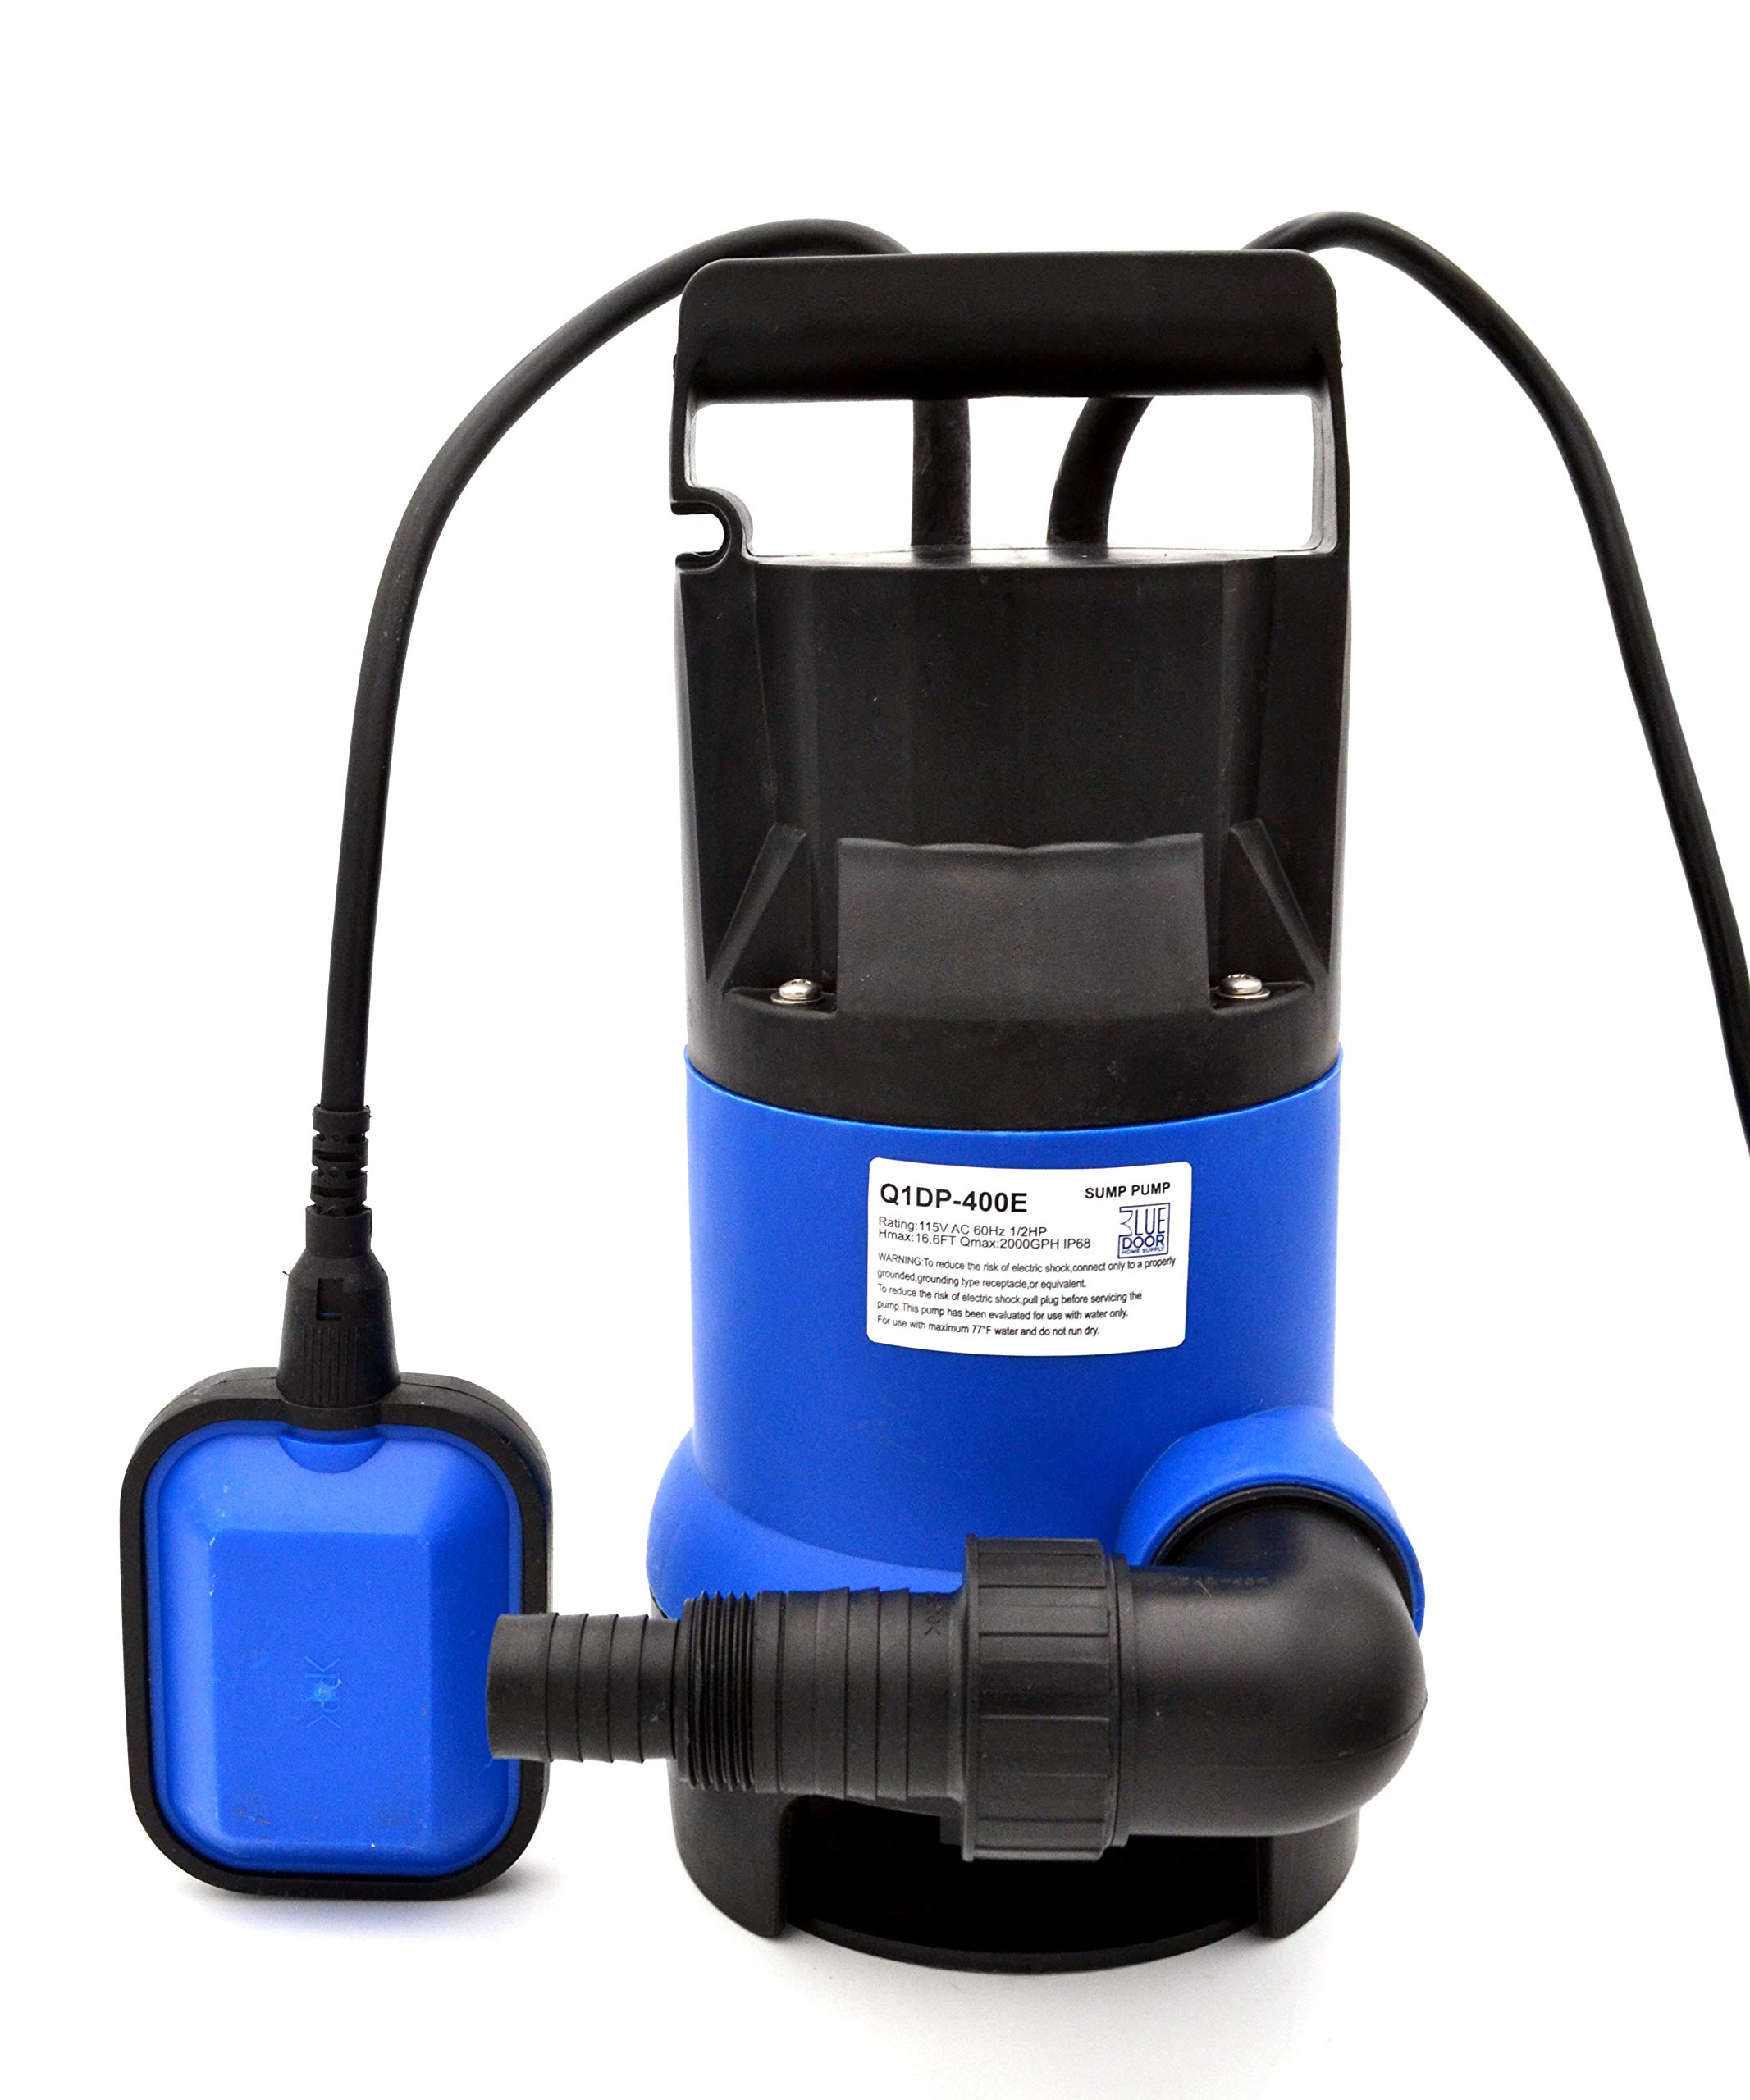 Submersible Clean/Dirty Water Sump Pump, Great for Outside Swimming Pools,  Ponds, or Indoor Basements and Floods   1/2 HP   Utility